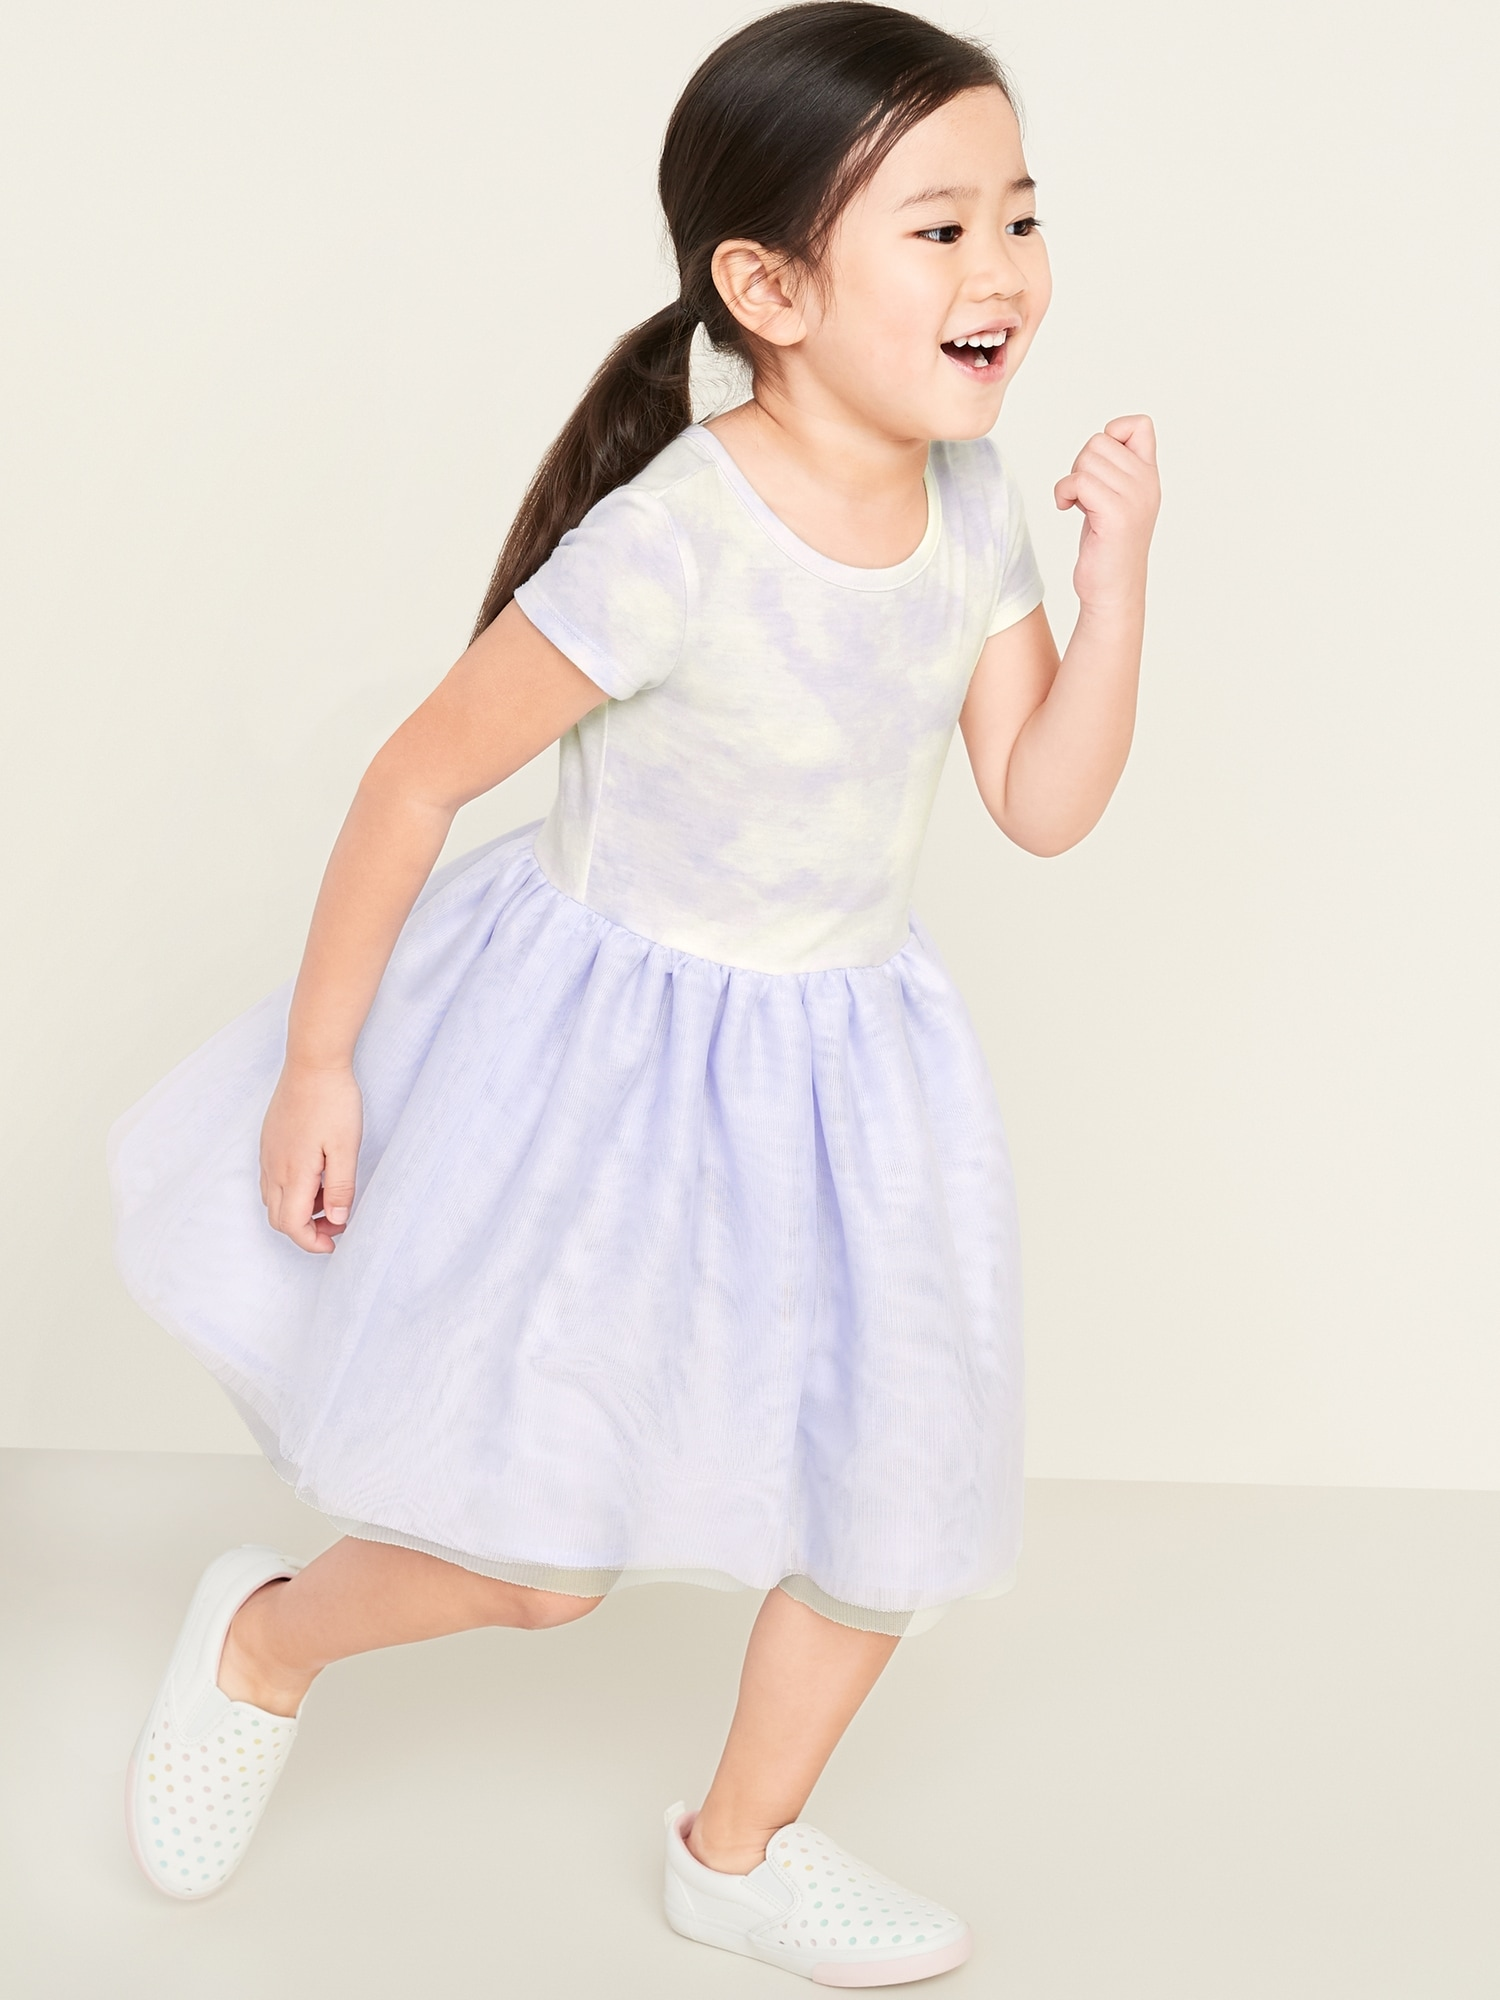 Baby Girls/' Tutu Skirt Toddler 5 Layered Tulle Skirt 0-3T